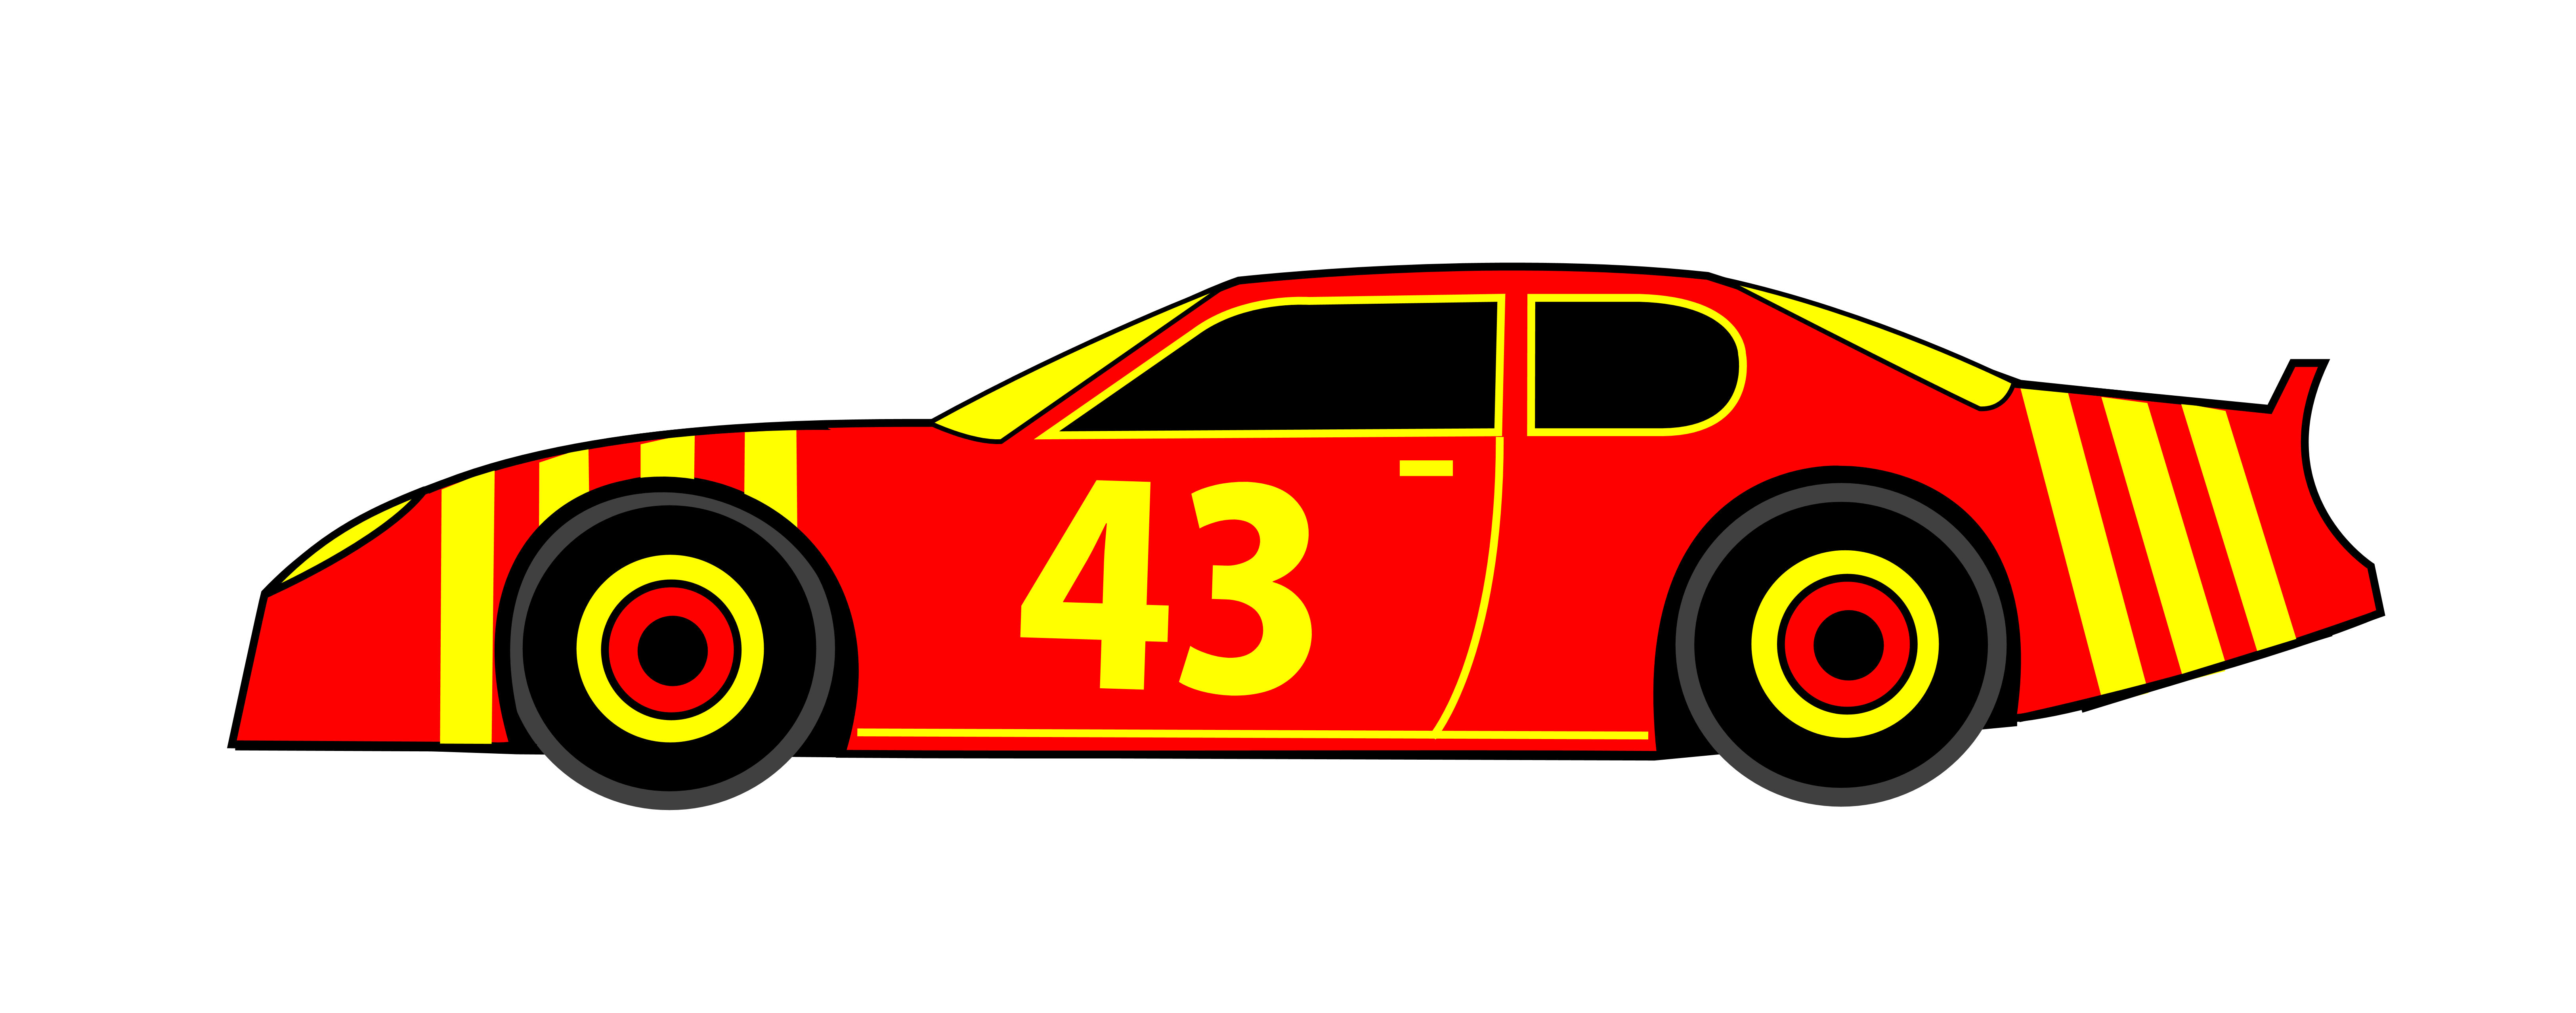 6500x2555 Race Car Clipart Png